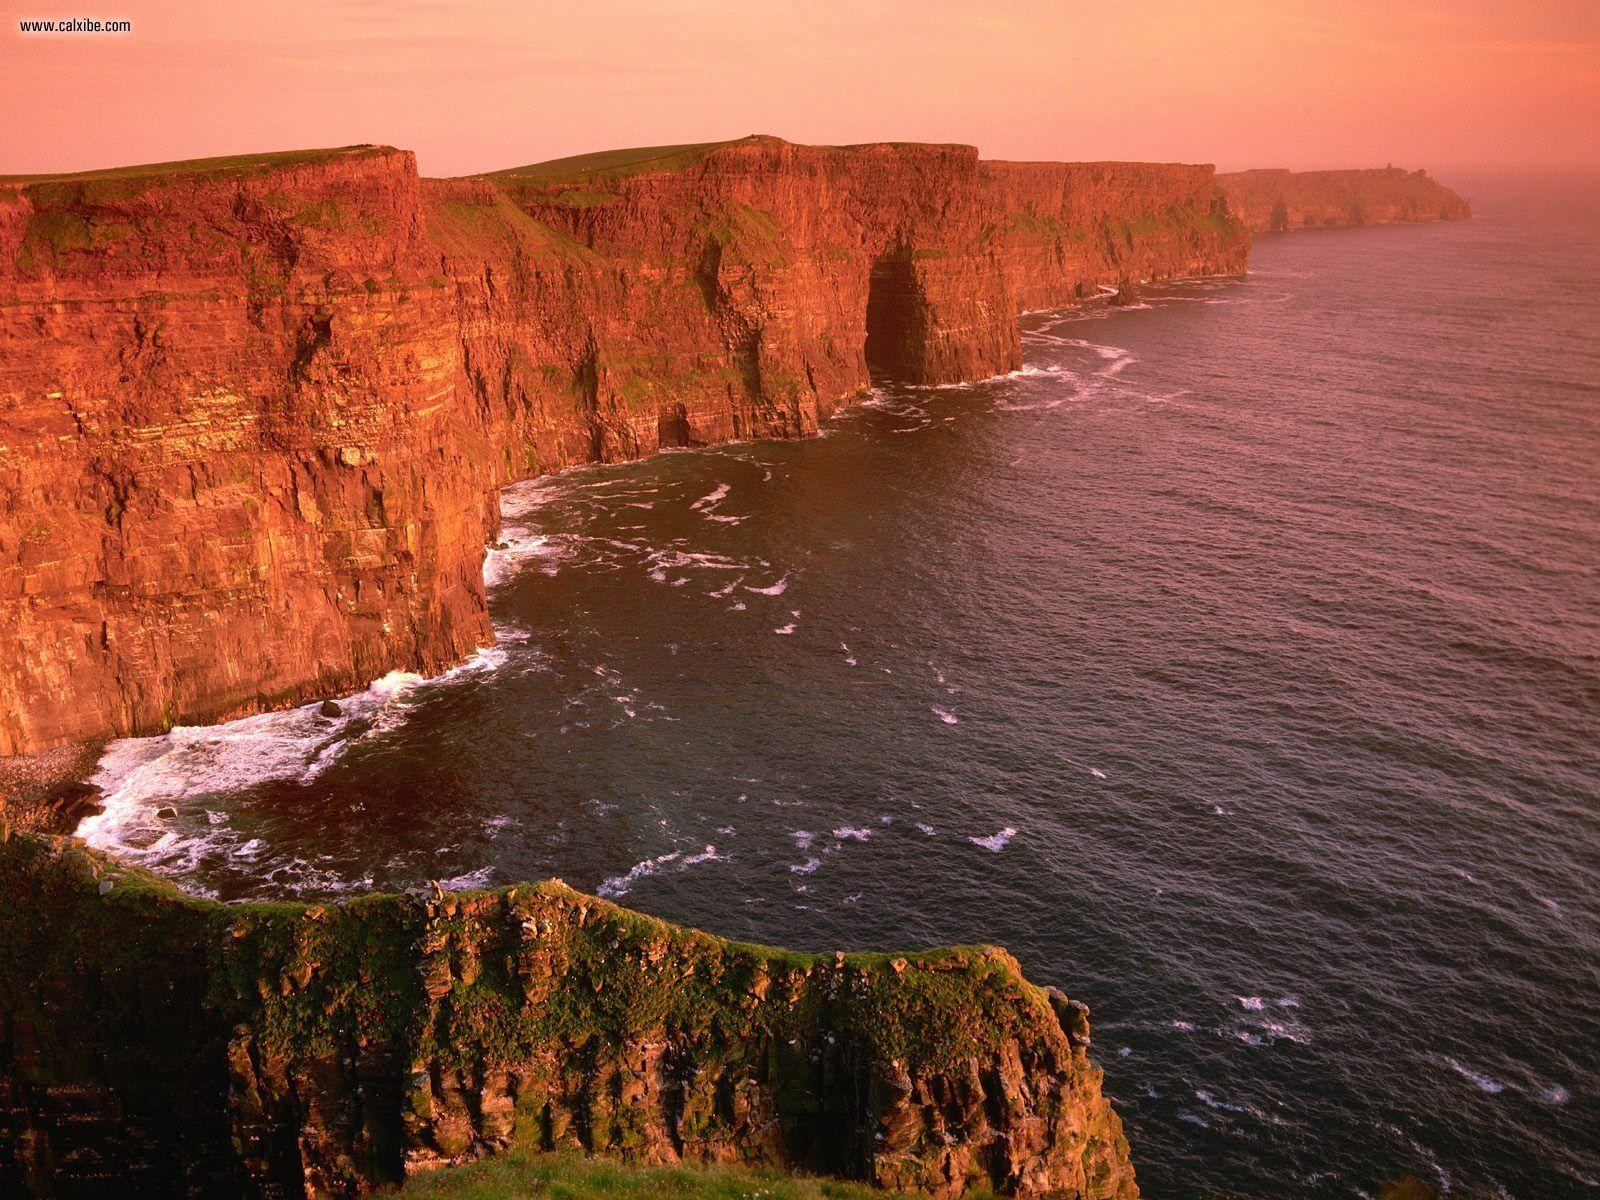 Nature: Cliffs Of Moher County Clare Ireland, picture nr. 19733